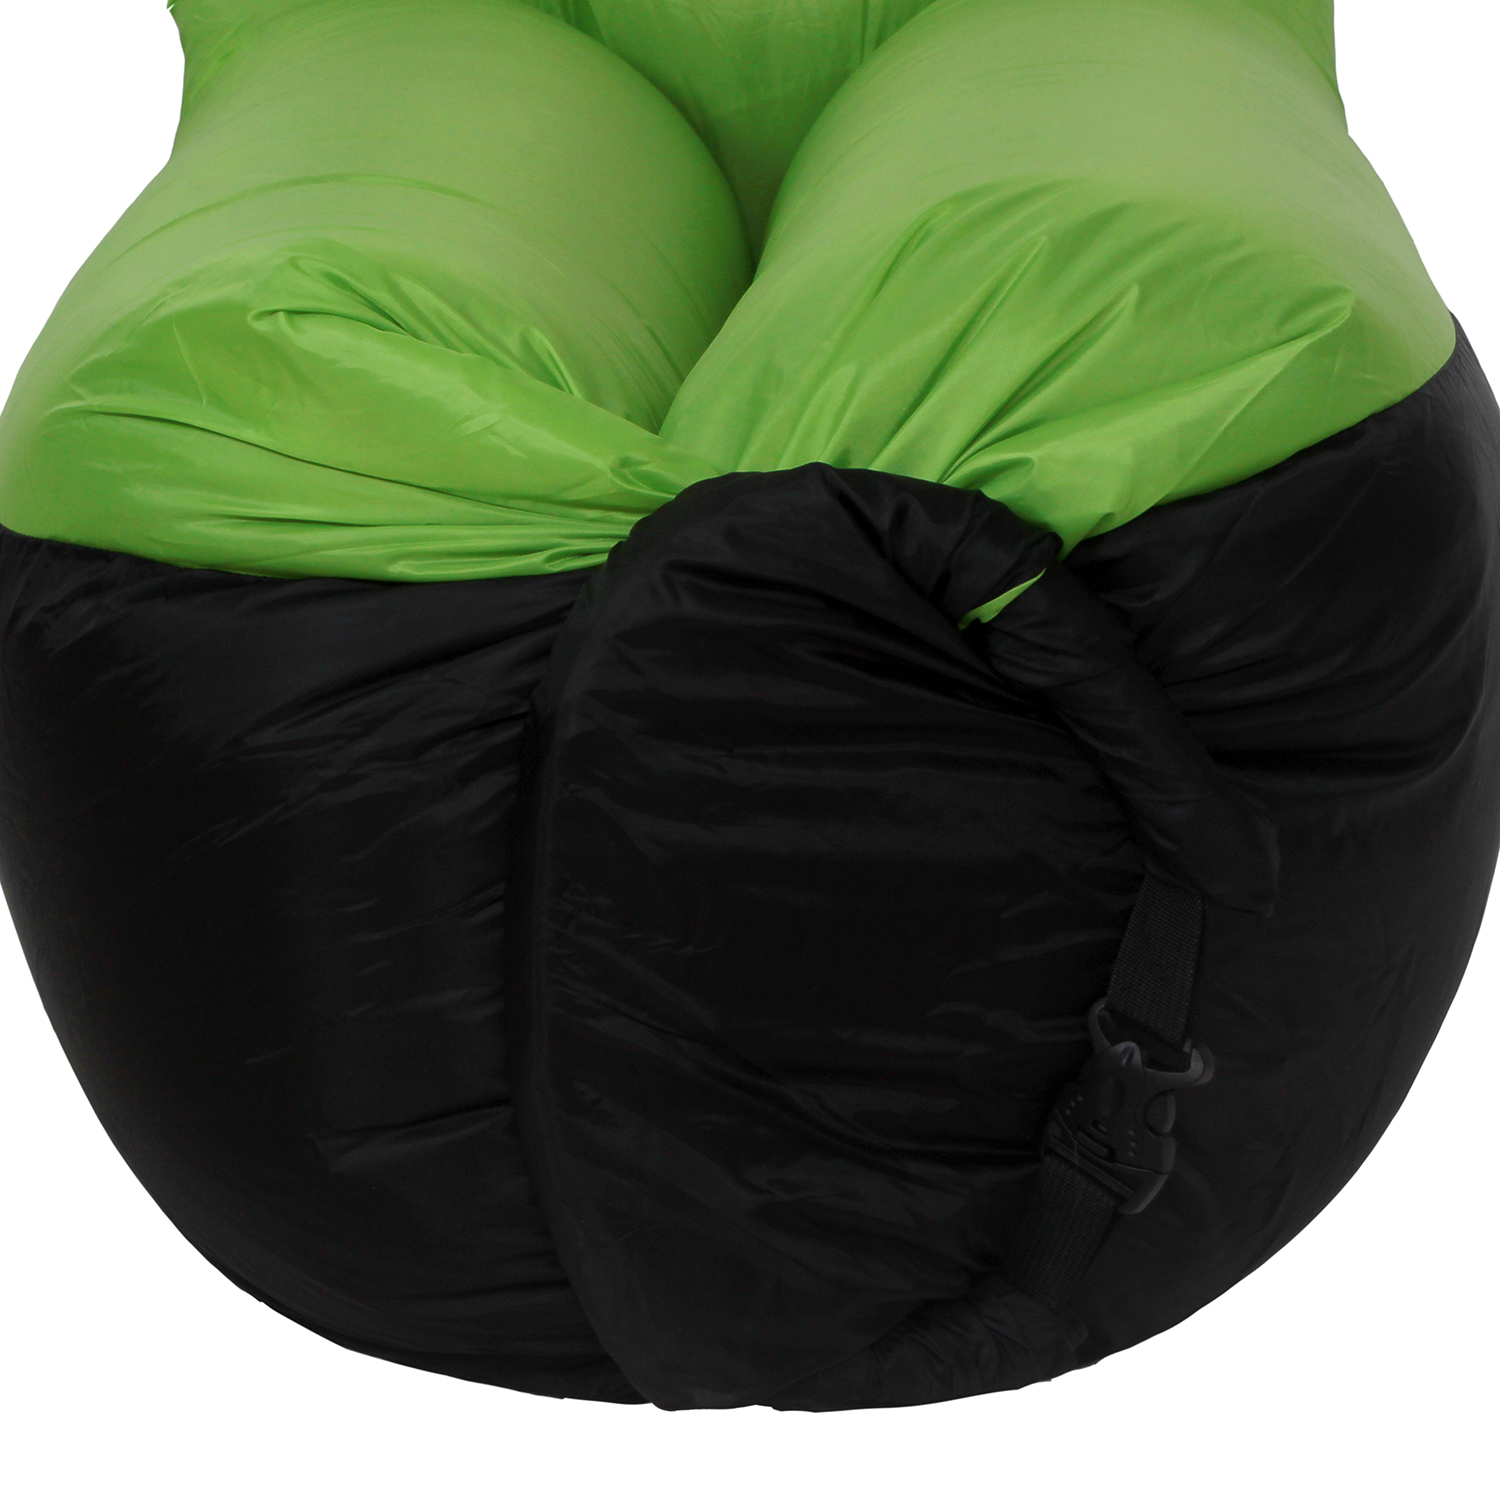 Sleeping Bags Camping & Hiking Able Inflatable Lounger Chair Air Lounger Inflatable Bag Fast Inflate Air Sofa Sleeping Bed For Travelling Camping Park Hiking Pool